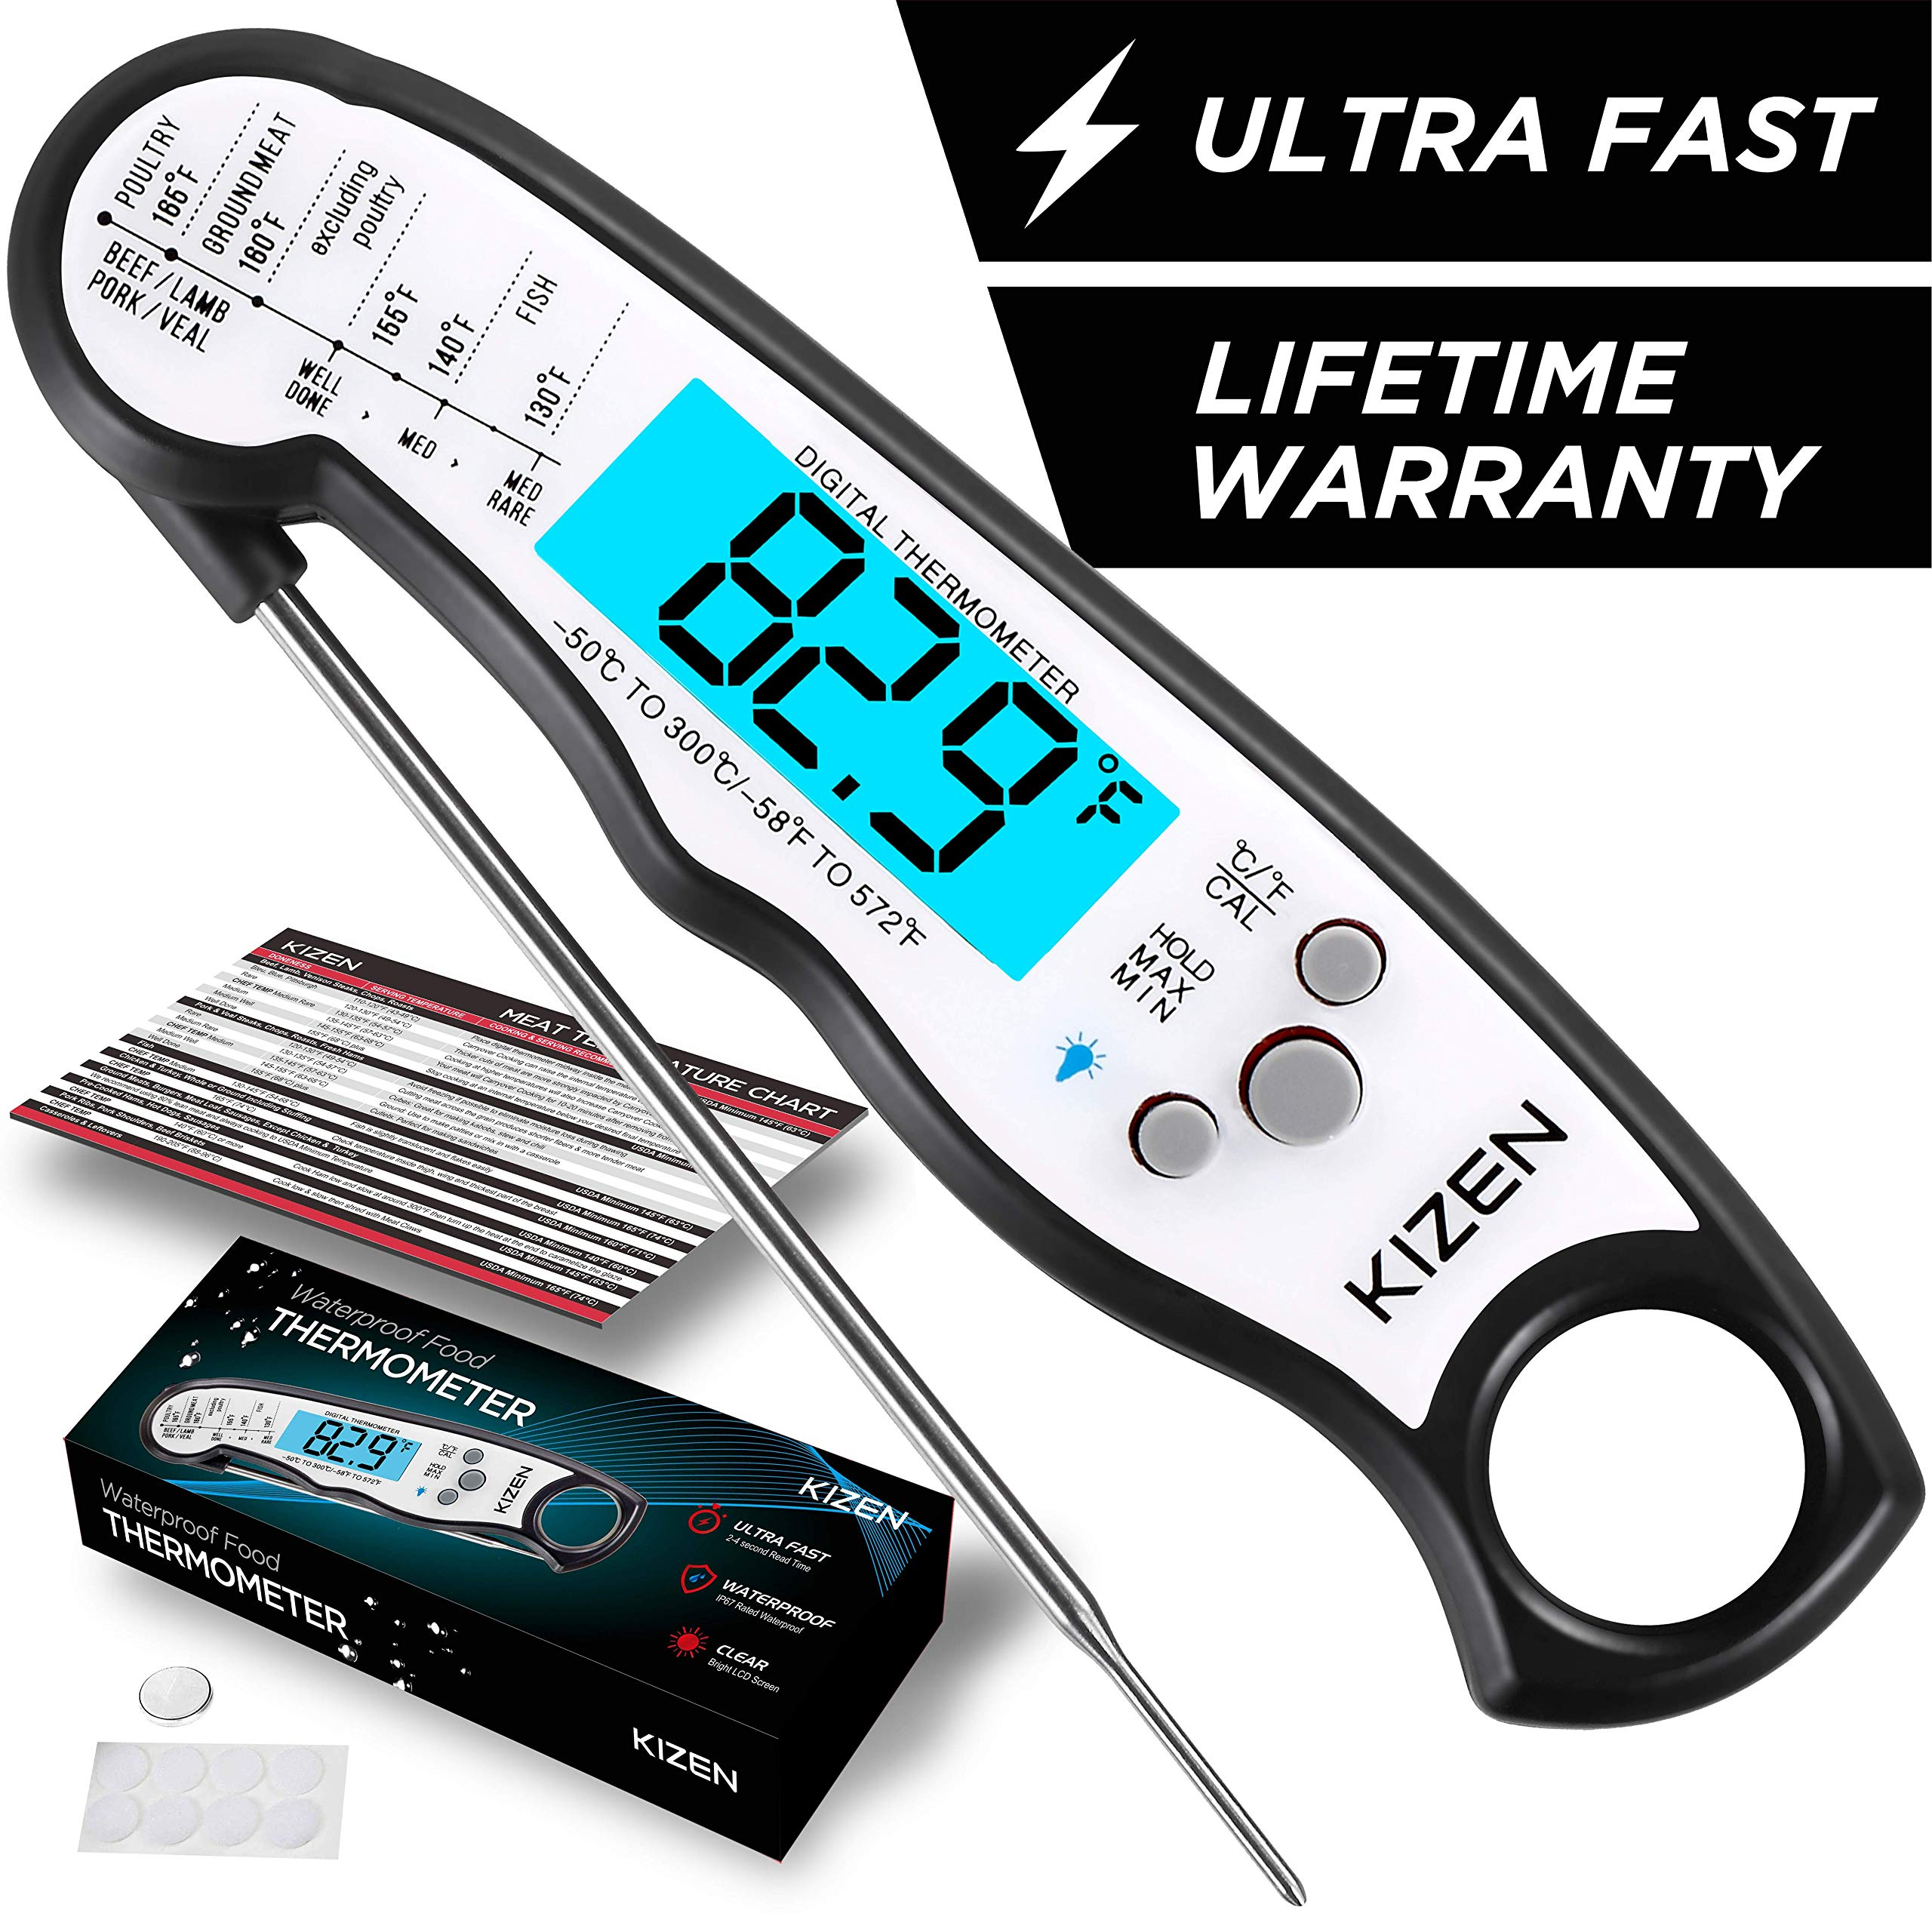 Kizen Instant Read Meat Thermometer - Best Waterproof Ultra Fast Thermometer with Backlight & Calibration. Kizen Digital Food Thermometer for Kitchen, Outdoor Cooking, BBQ, and Grill! by Kizen